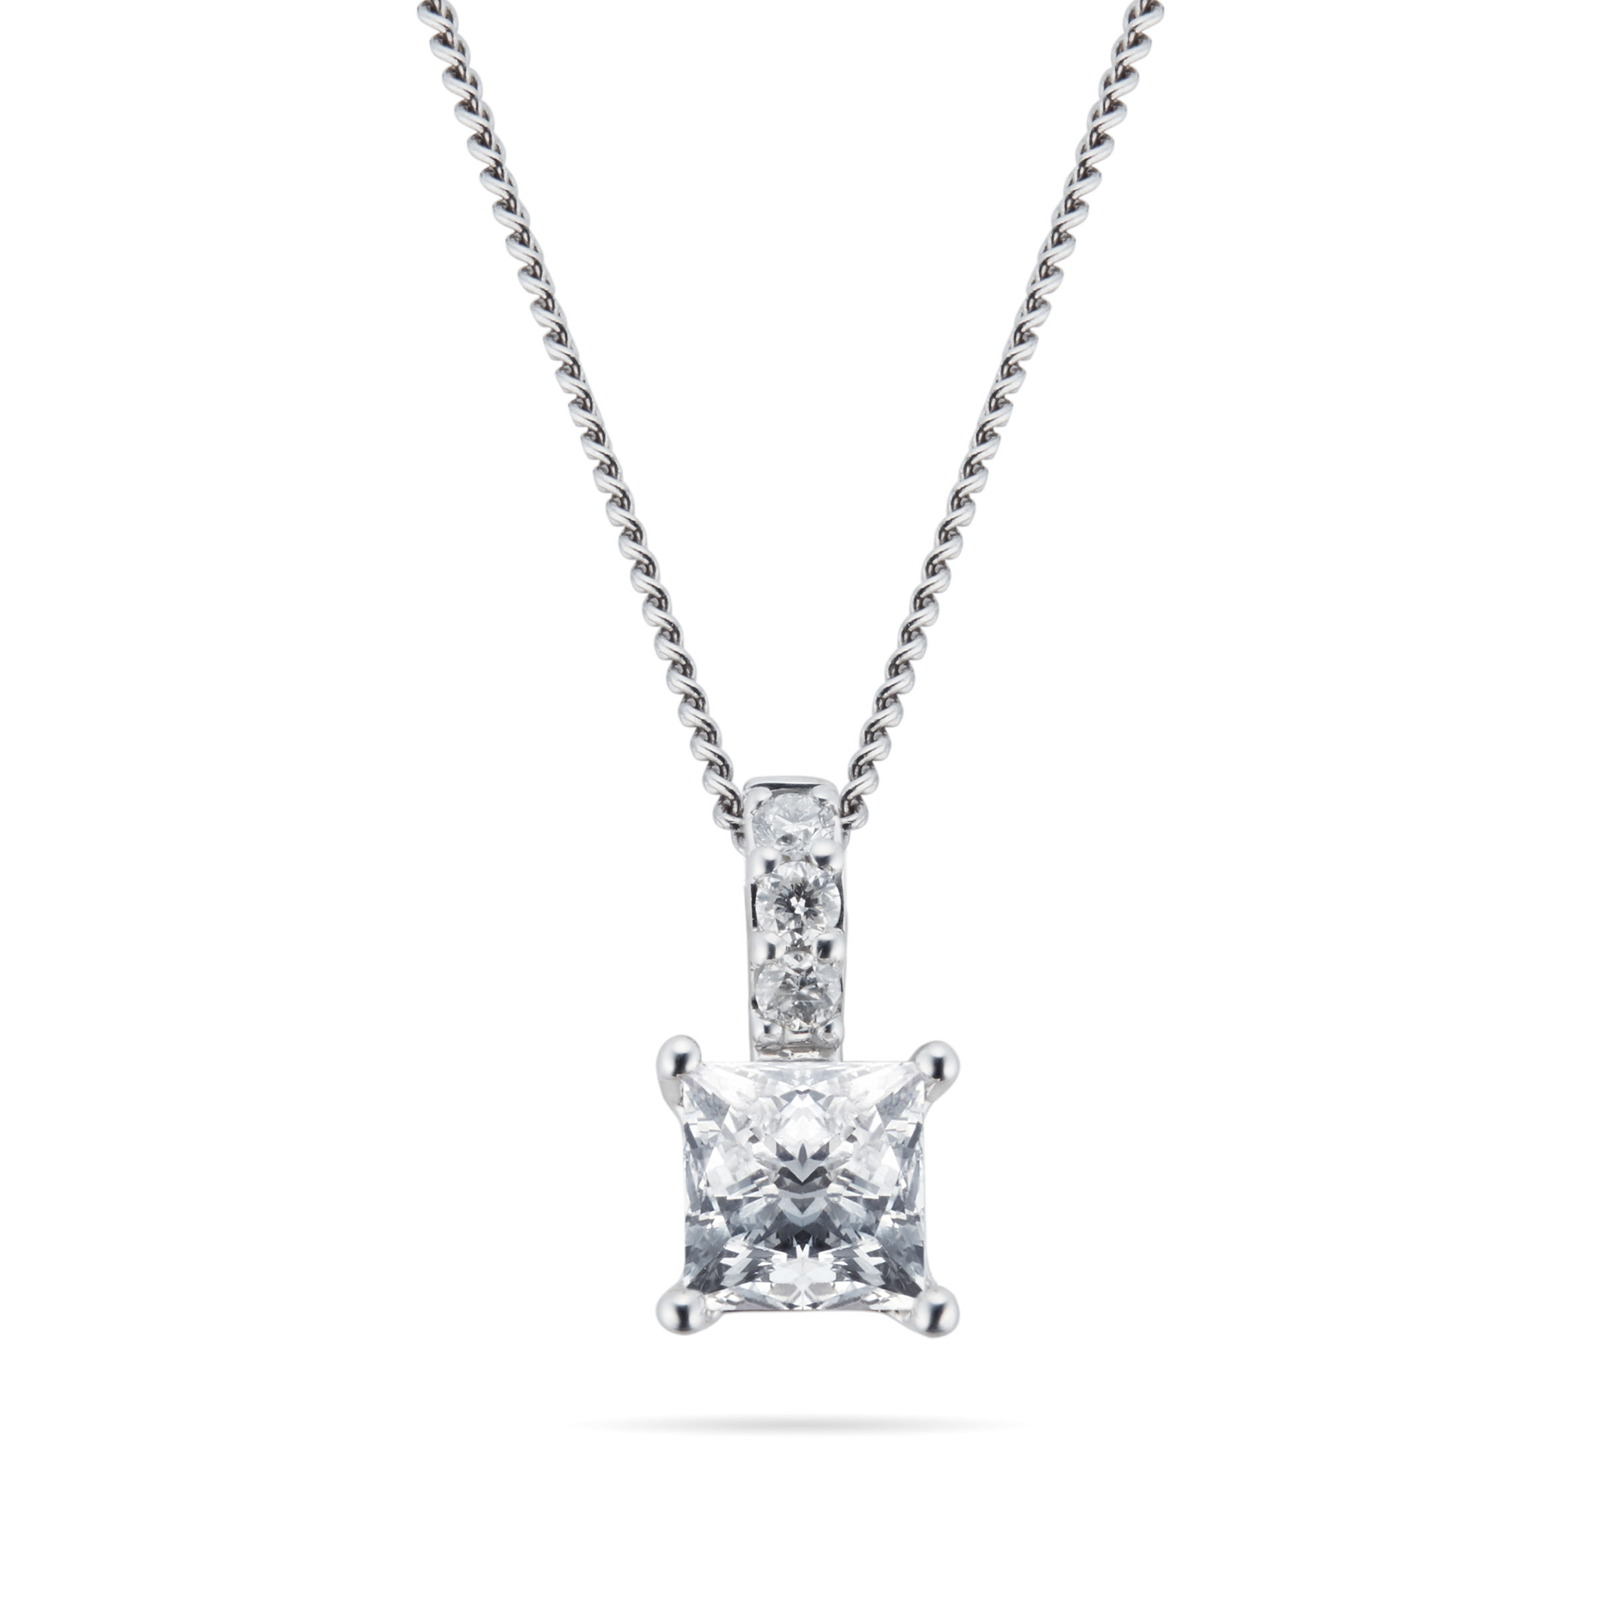 9ct White Gold 0.25ct Princess Cut Goldsmiths Brightest Diamond Pendant